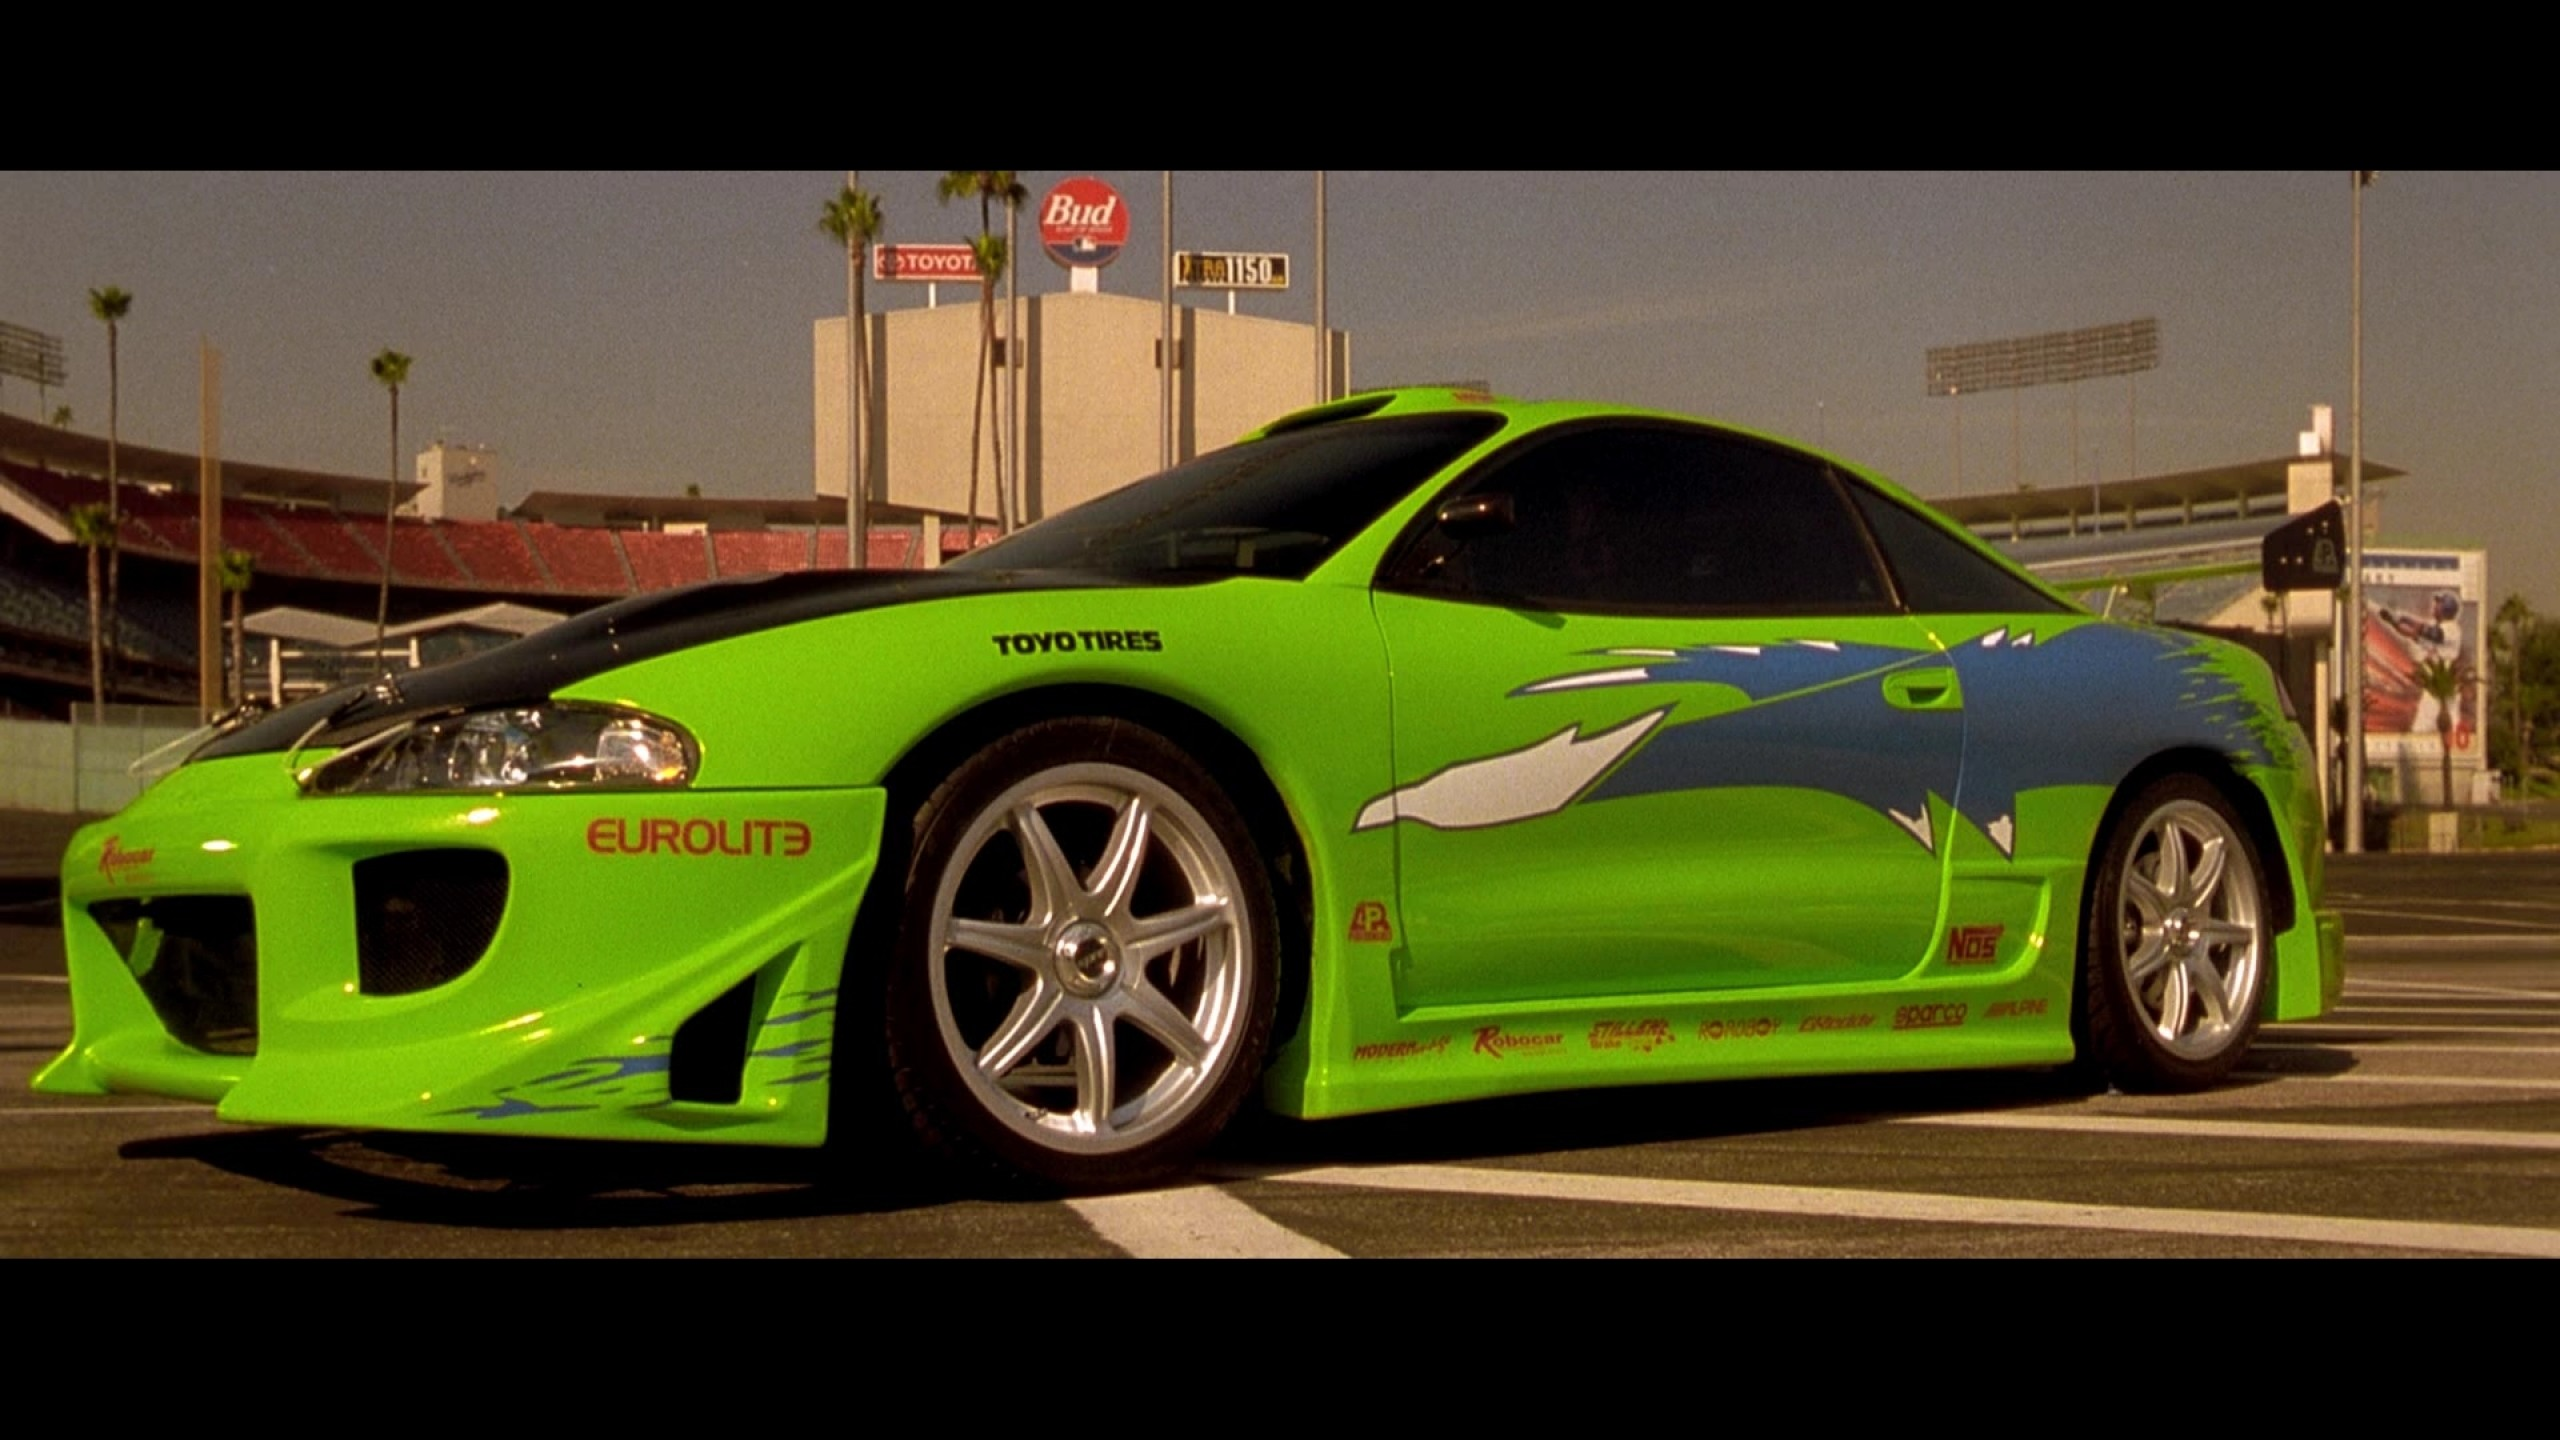 2560x1440 Fast-And-Furious-Car-HD-Image